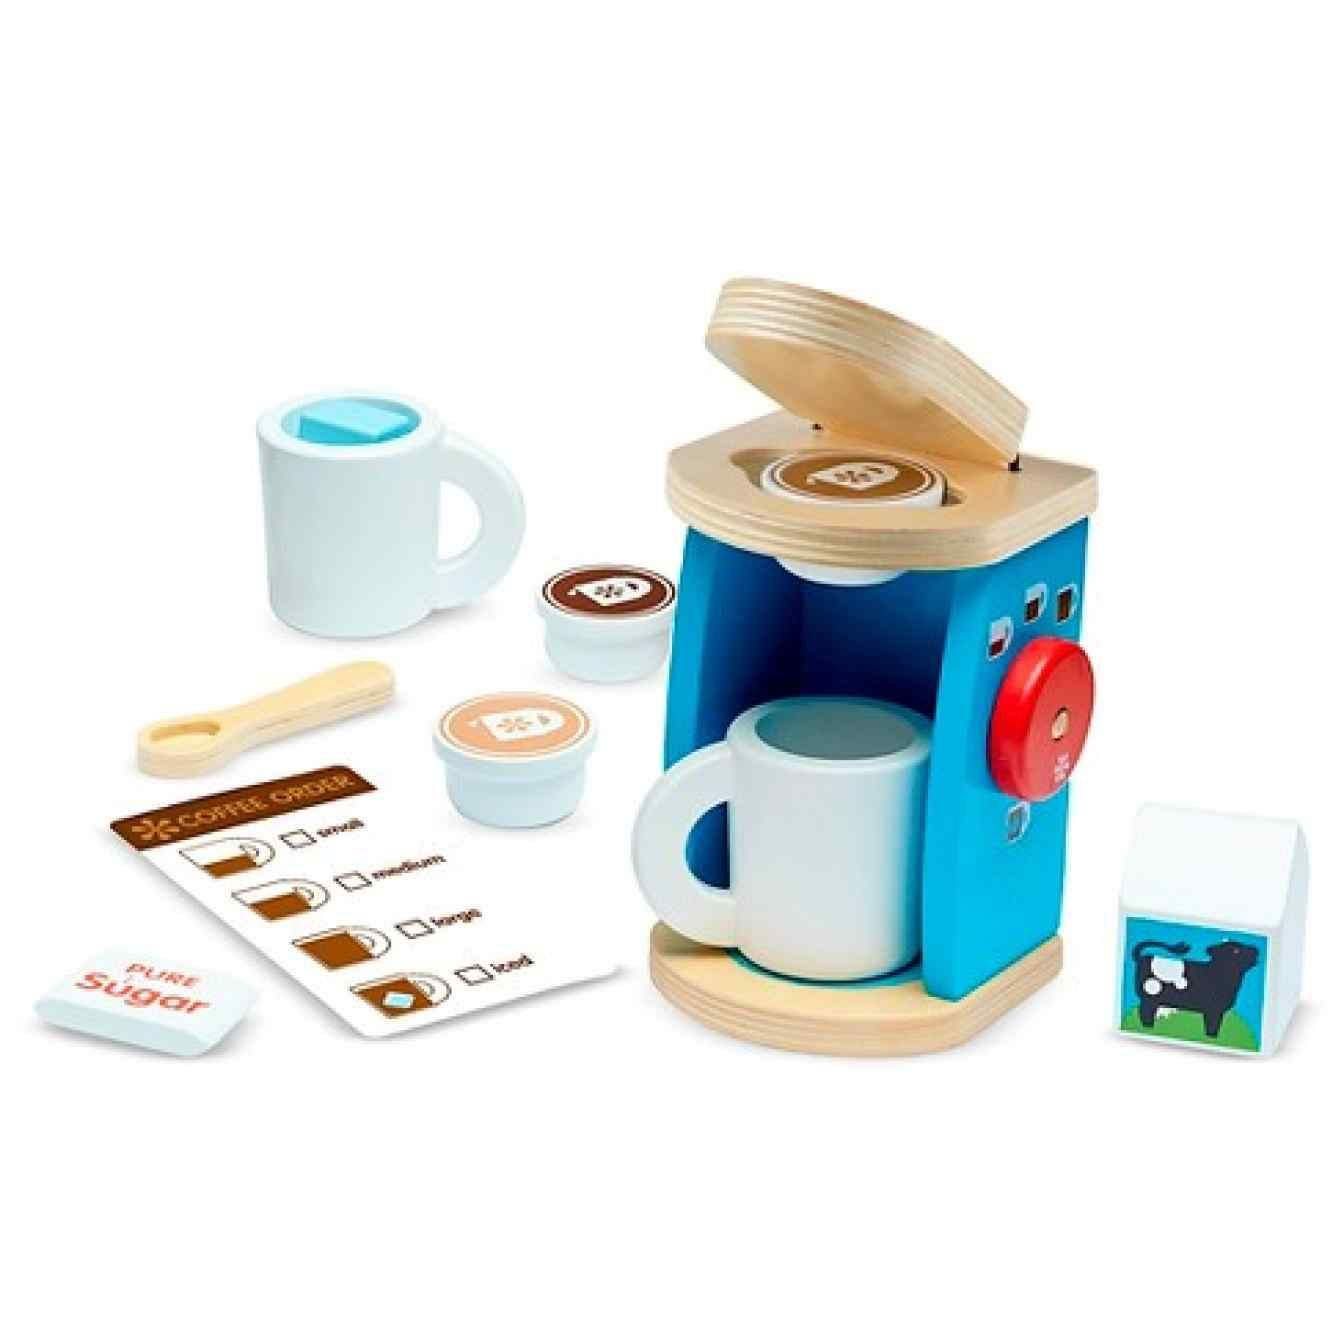 11 Simple Beautiful Wooden Toys You Can Buy At Target Play Kitchen Accessories Coffee Set Opening A Coffee Shop